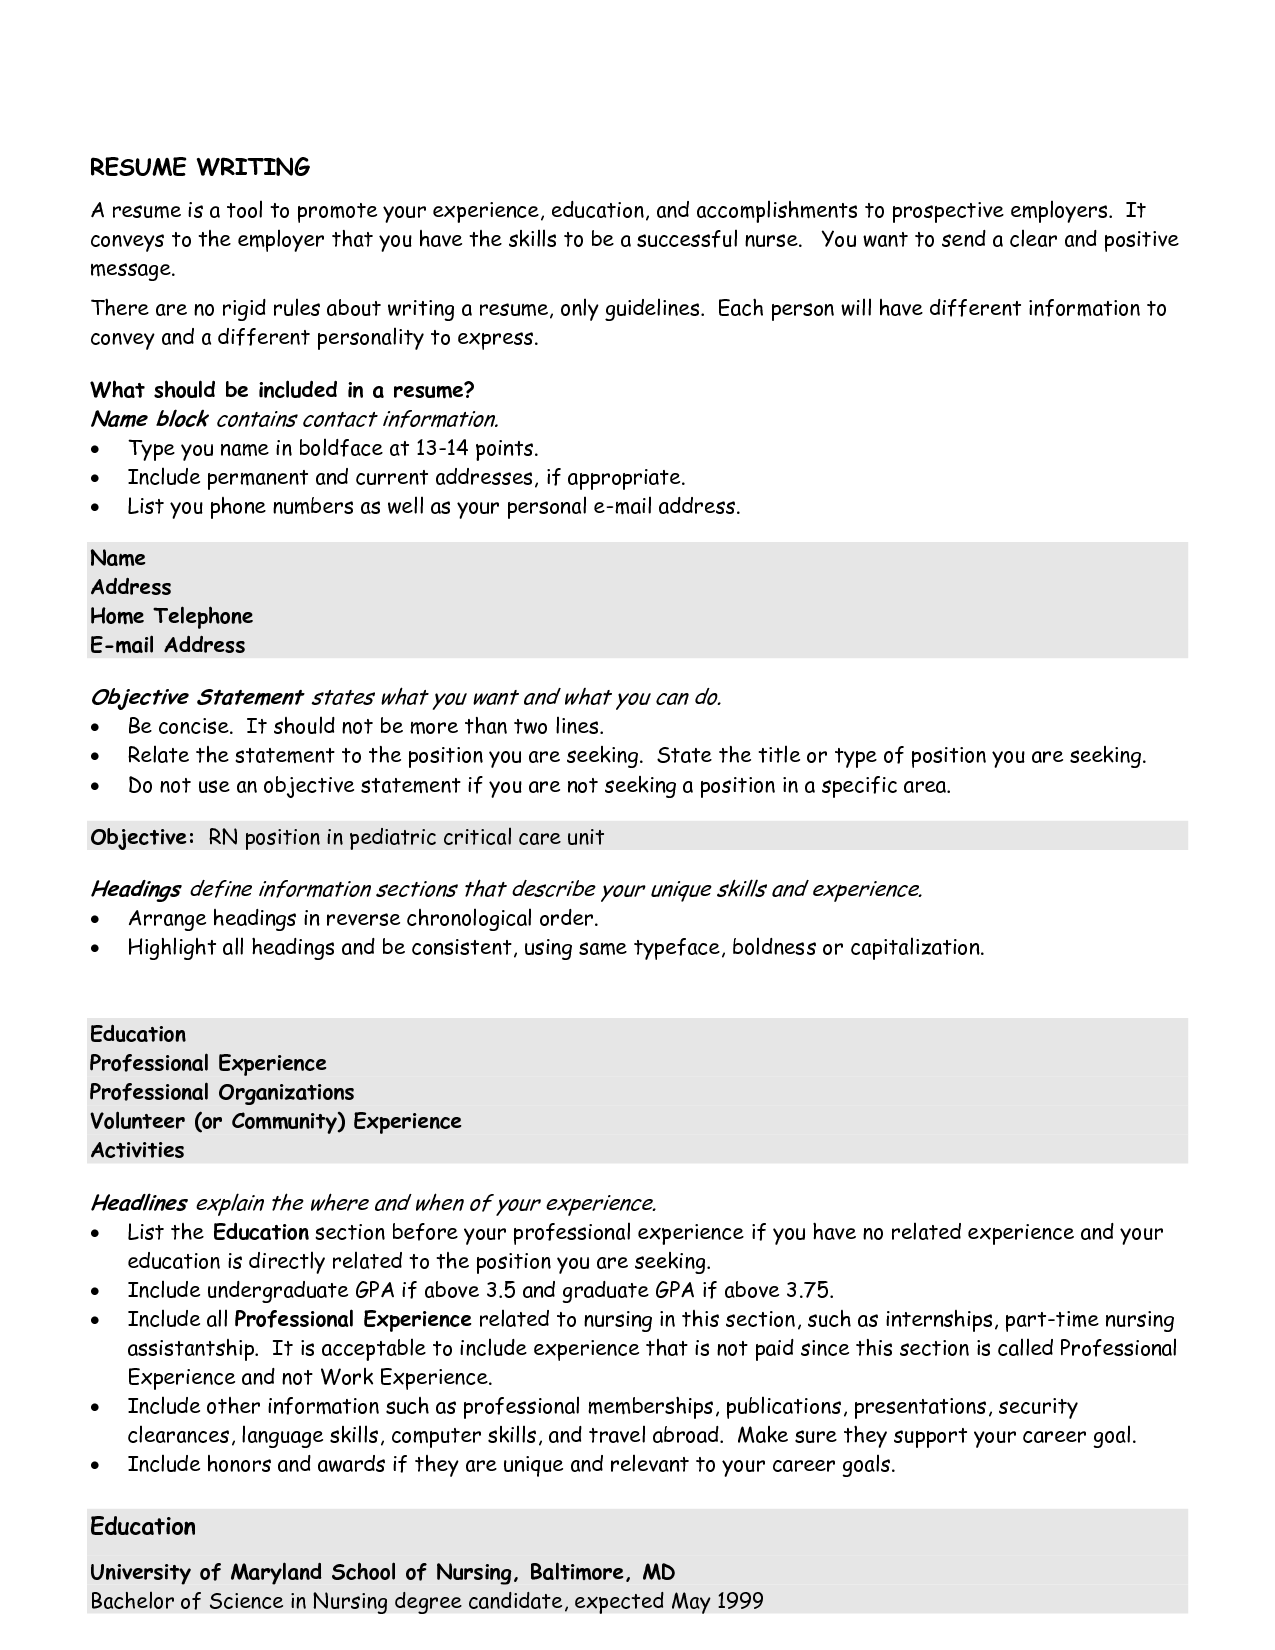 How To List Education On Resume If Still In College Impressive Sample Resume Objective For College Student  Httpwww